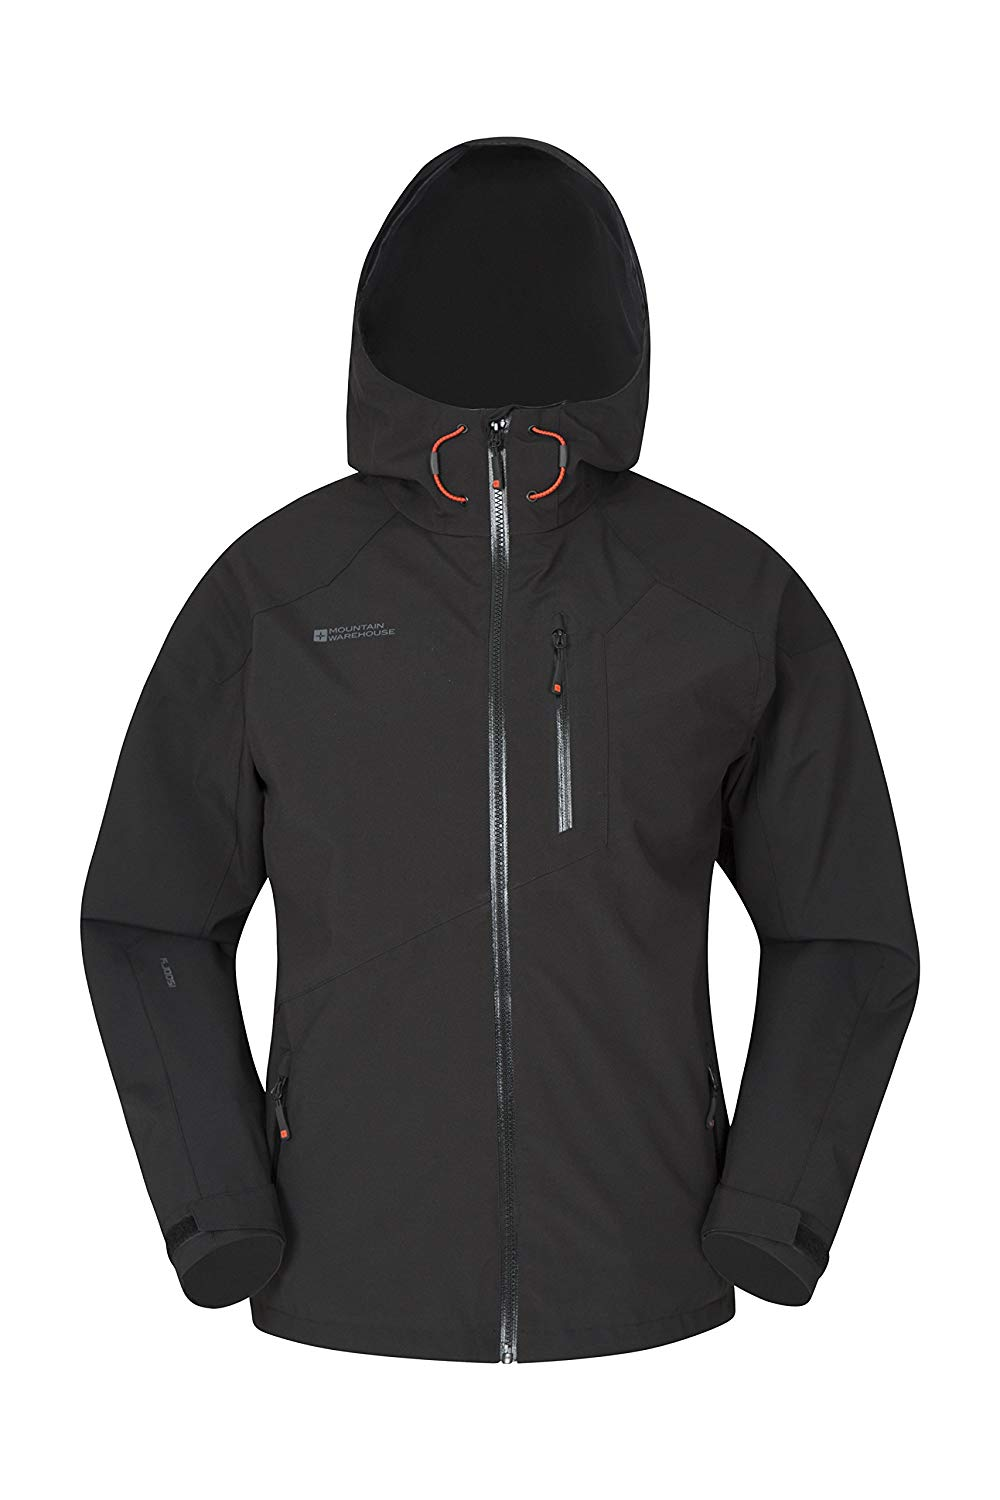 e9f6959172ab Get Quotations · Mountain Warehouse Bachill Mens Waterproof Jacket - Casual  Rain Coat